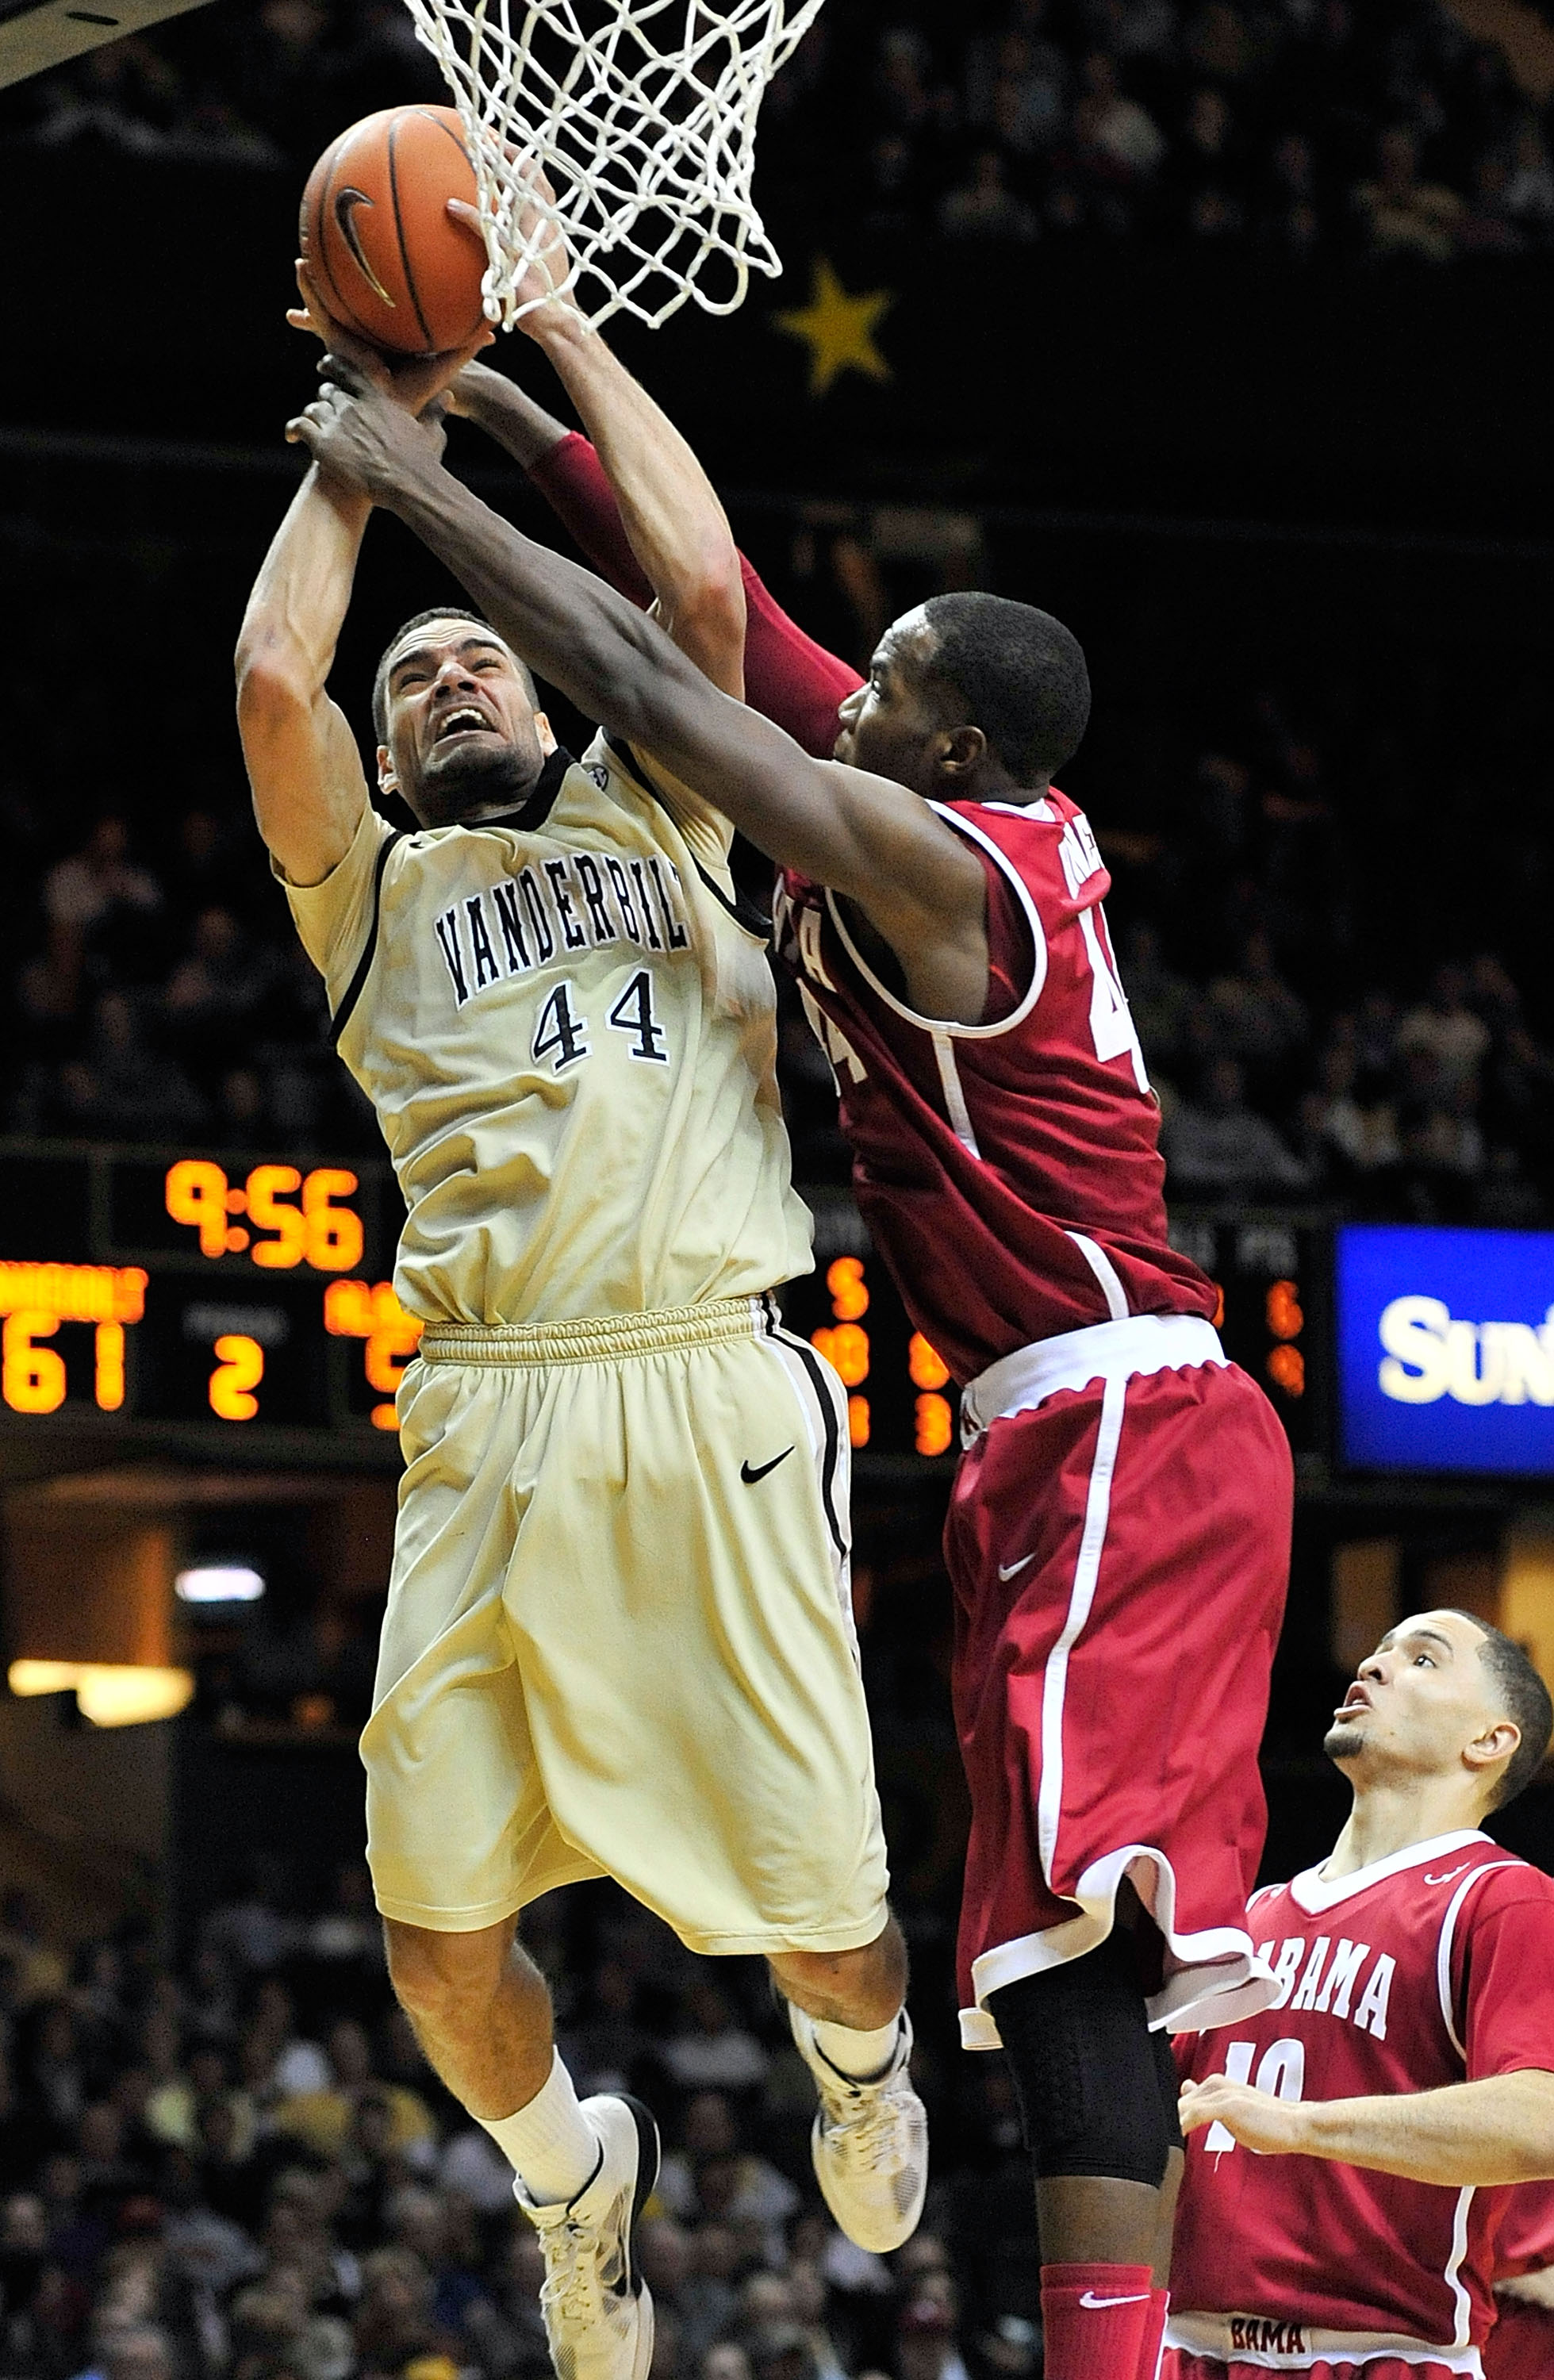 NASHVILLE, TN - FEBRUARY 10:  Jeffery Taylor #44 of the Vanderbilt Commodores is fouled by Chris Hines #44 of the Alabama Crimson Tide at Memorial Gym on February 10, 2011 in Nashville, Tennessee. Vanderbilt won 81-77. (Photo by Grant Halverson/Getty Imag